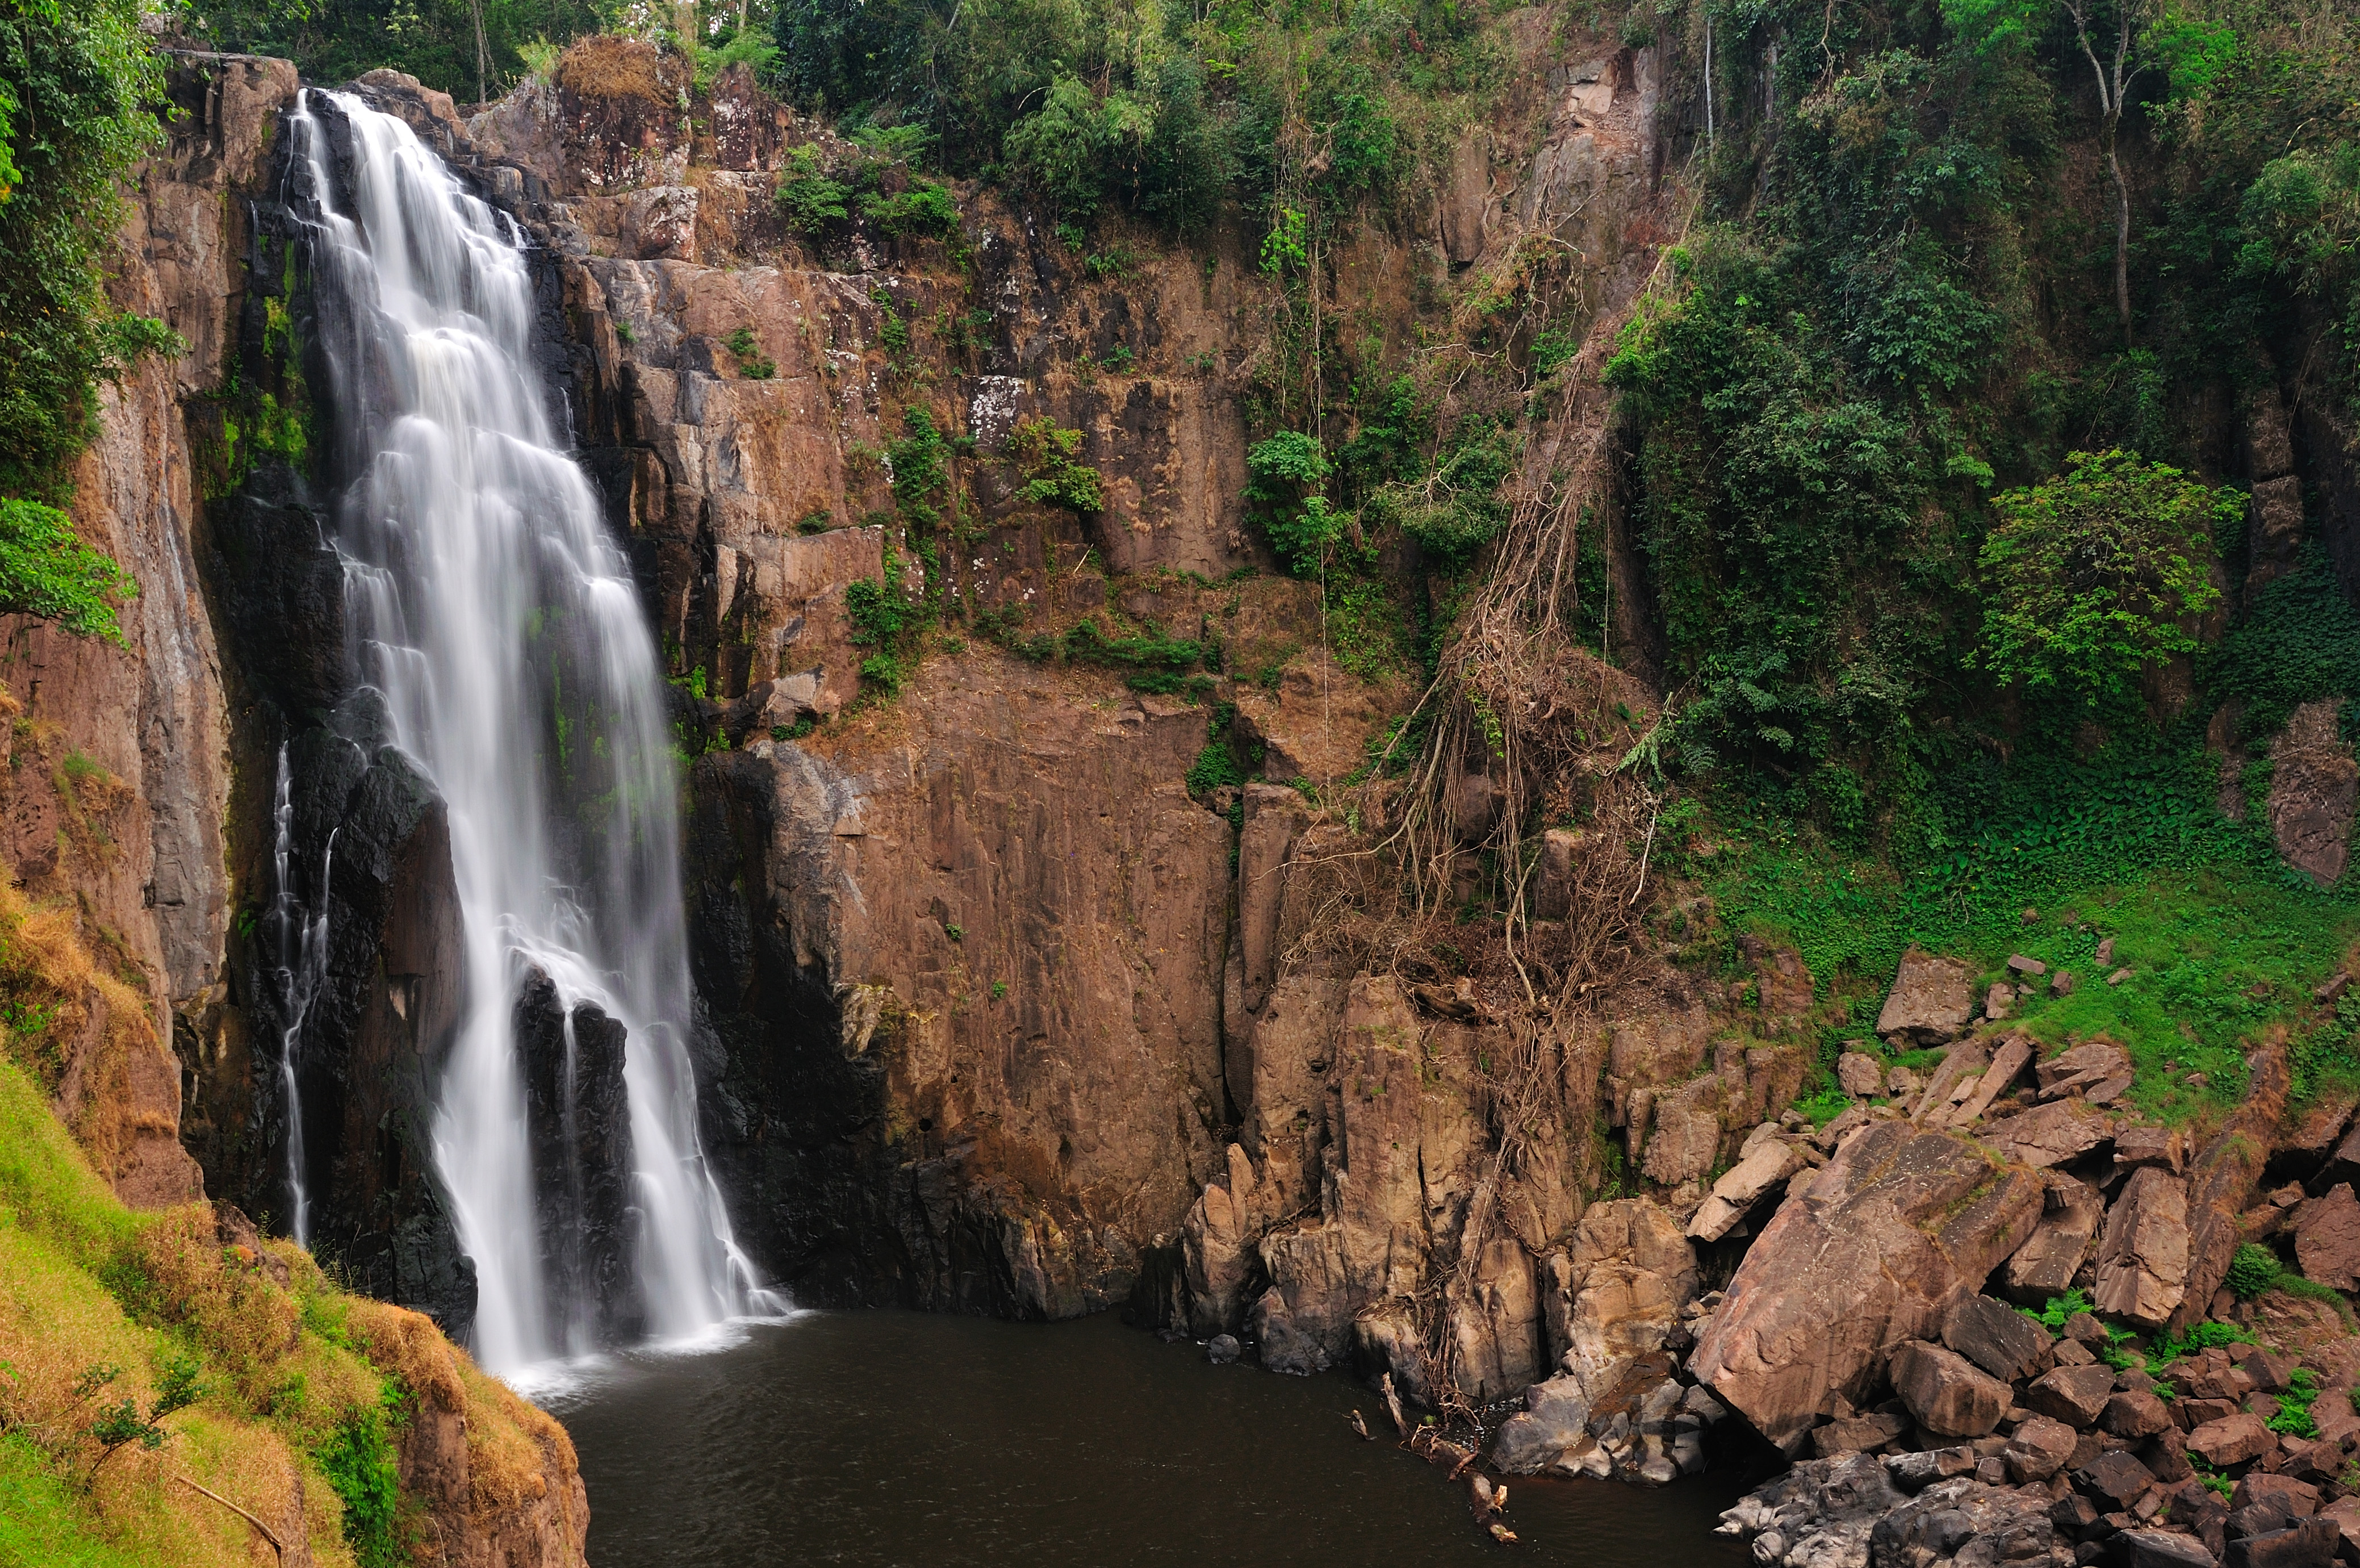 Haew narok waterfall first tier